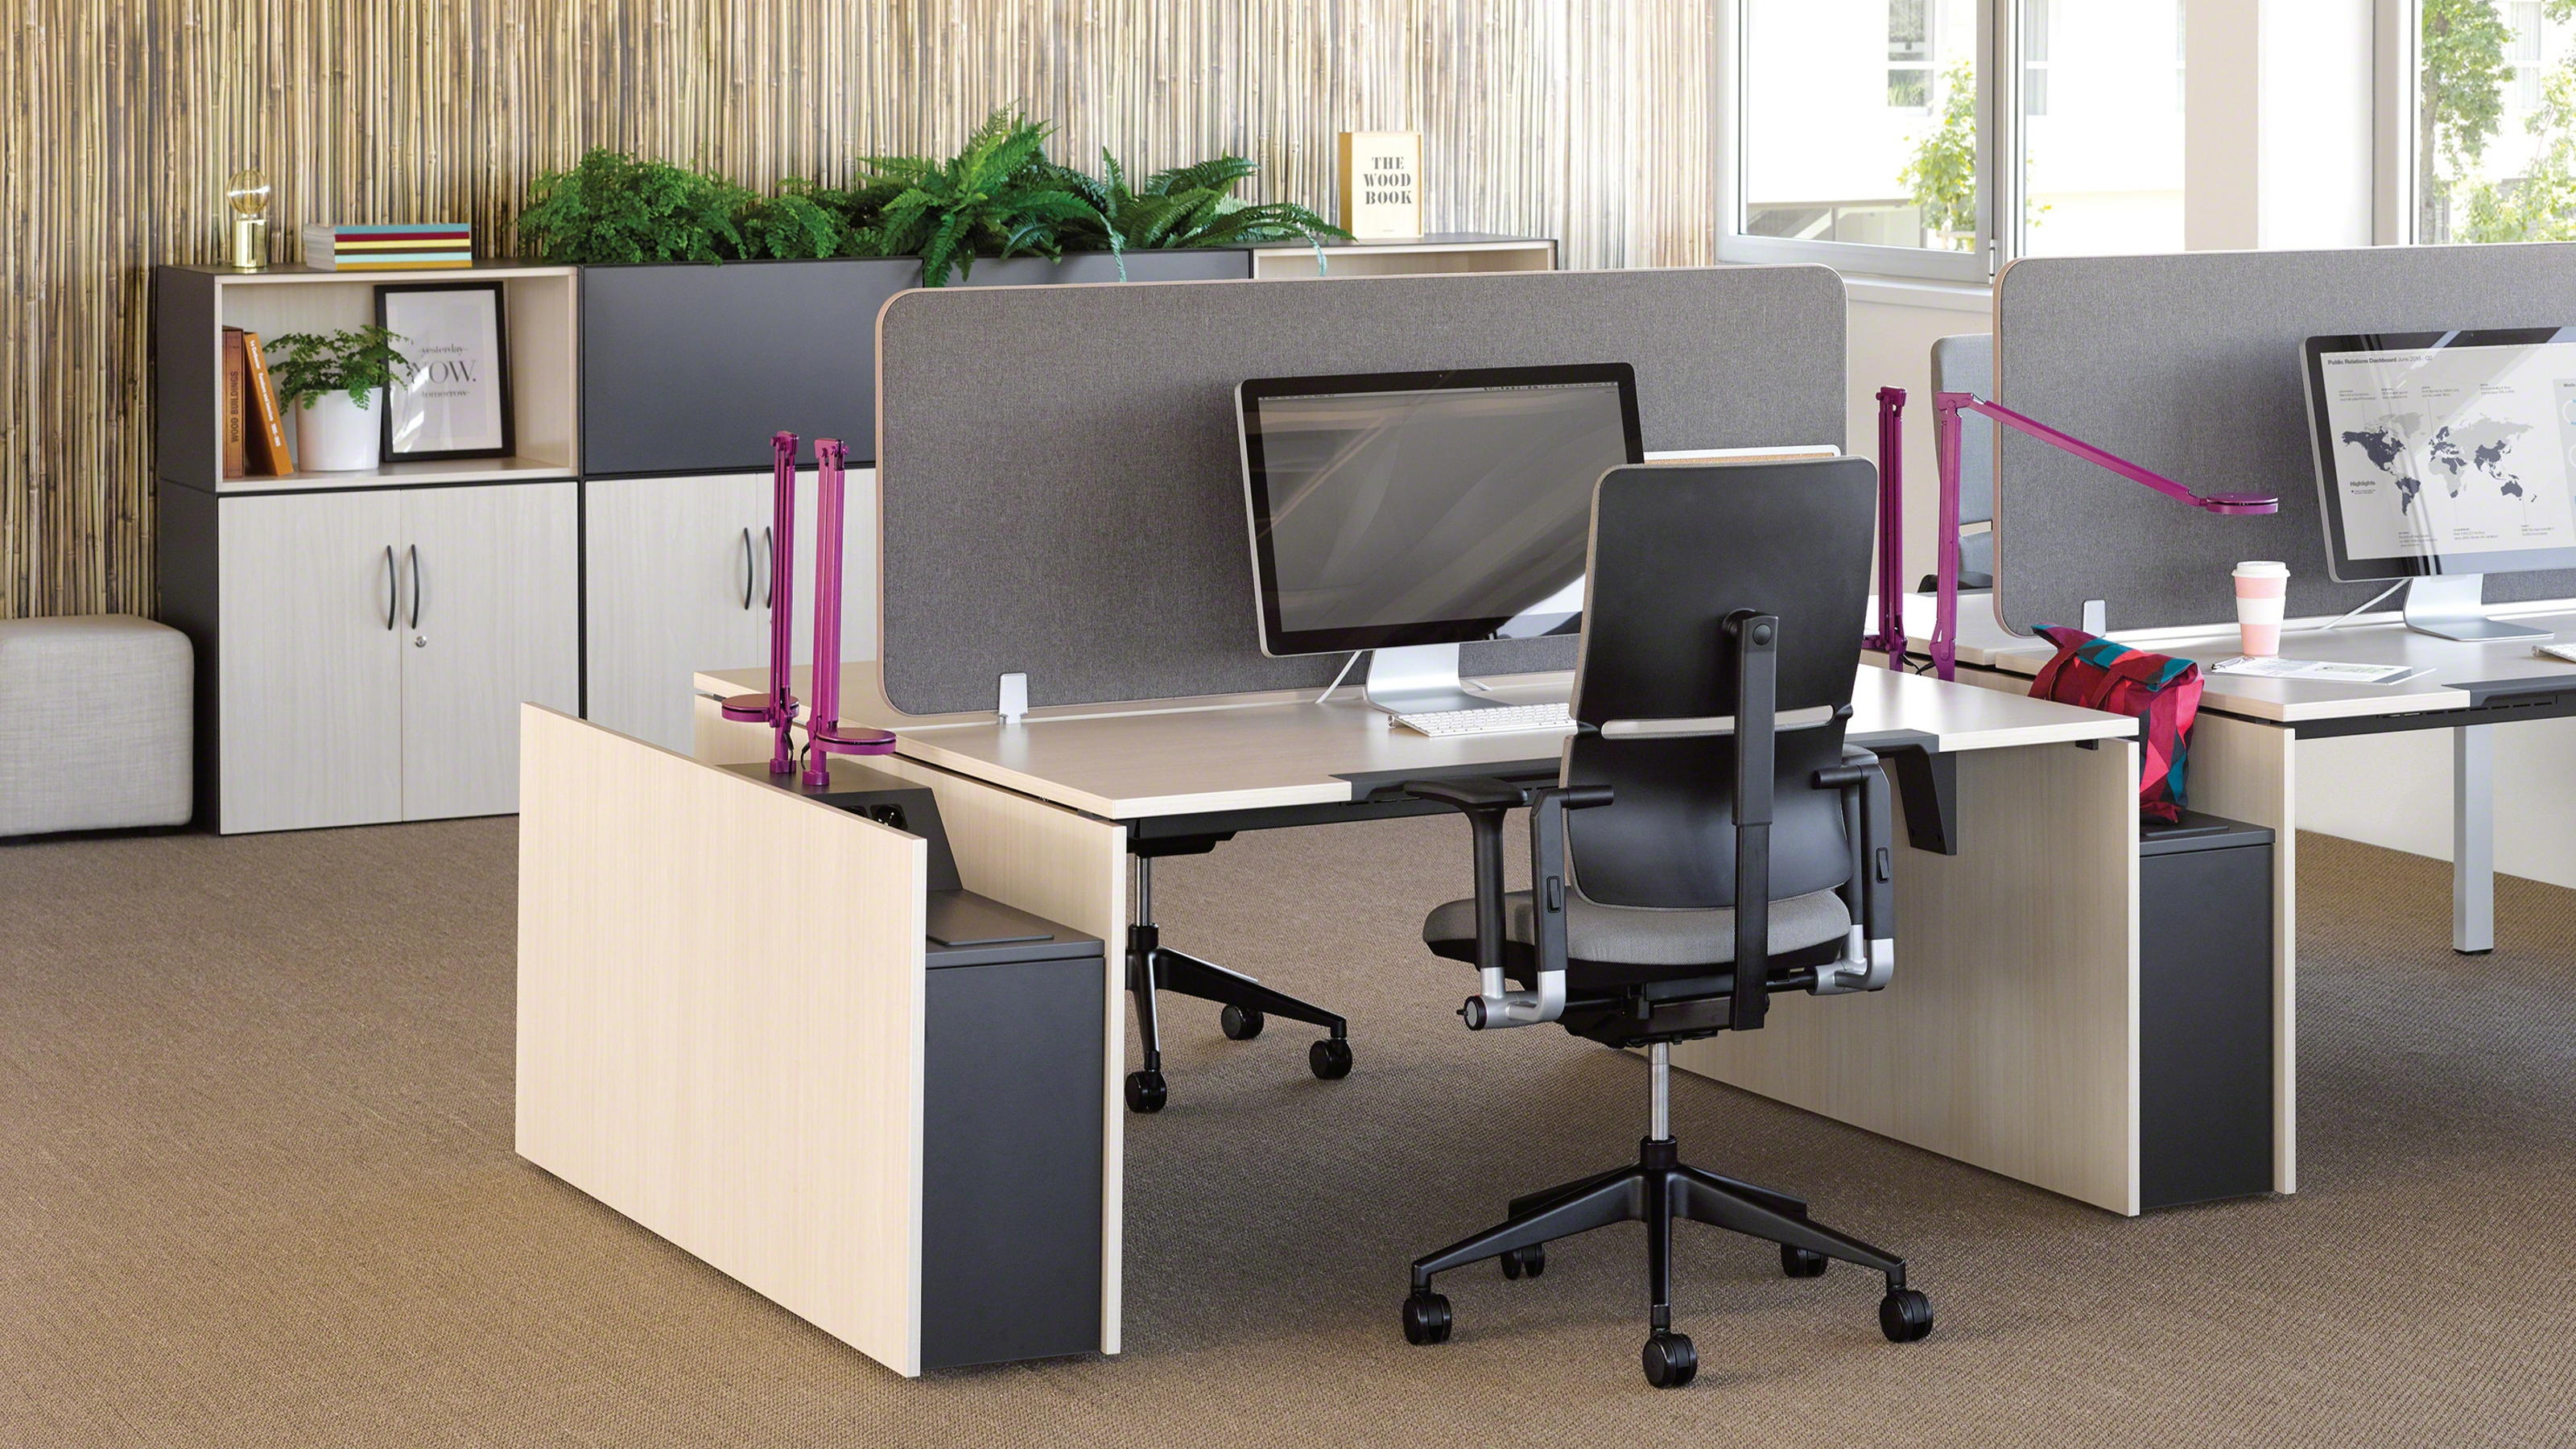 Steelcase  Office Furniture Solutions Education  Healthcare